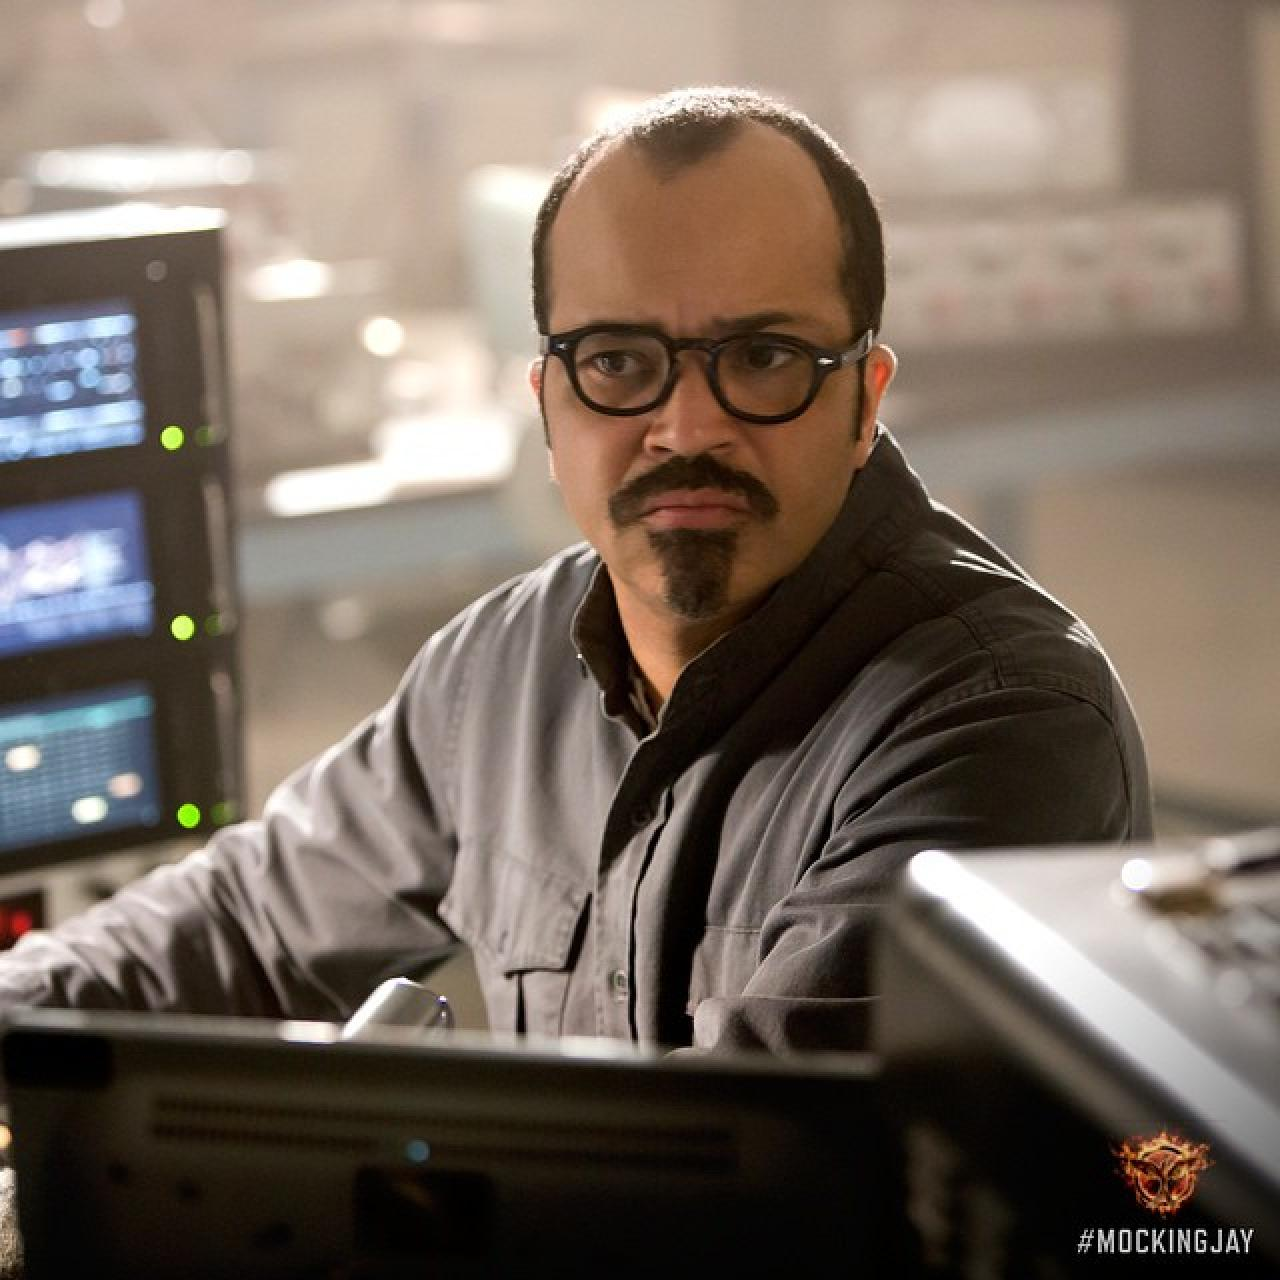 wheelchair genius sofa chair covers target the hunger games mockingjay  part 1 jeffrey wright 2